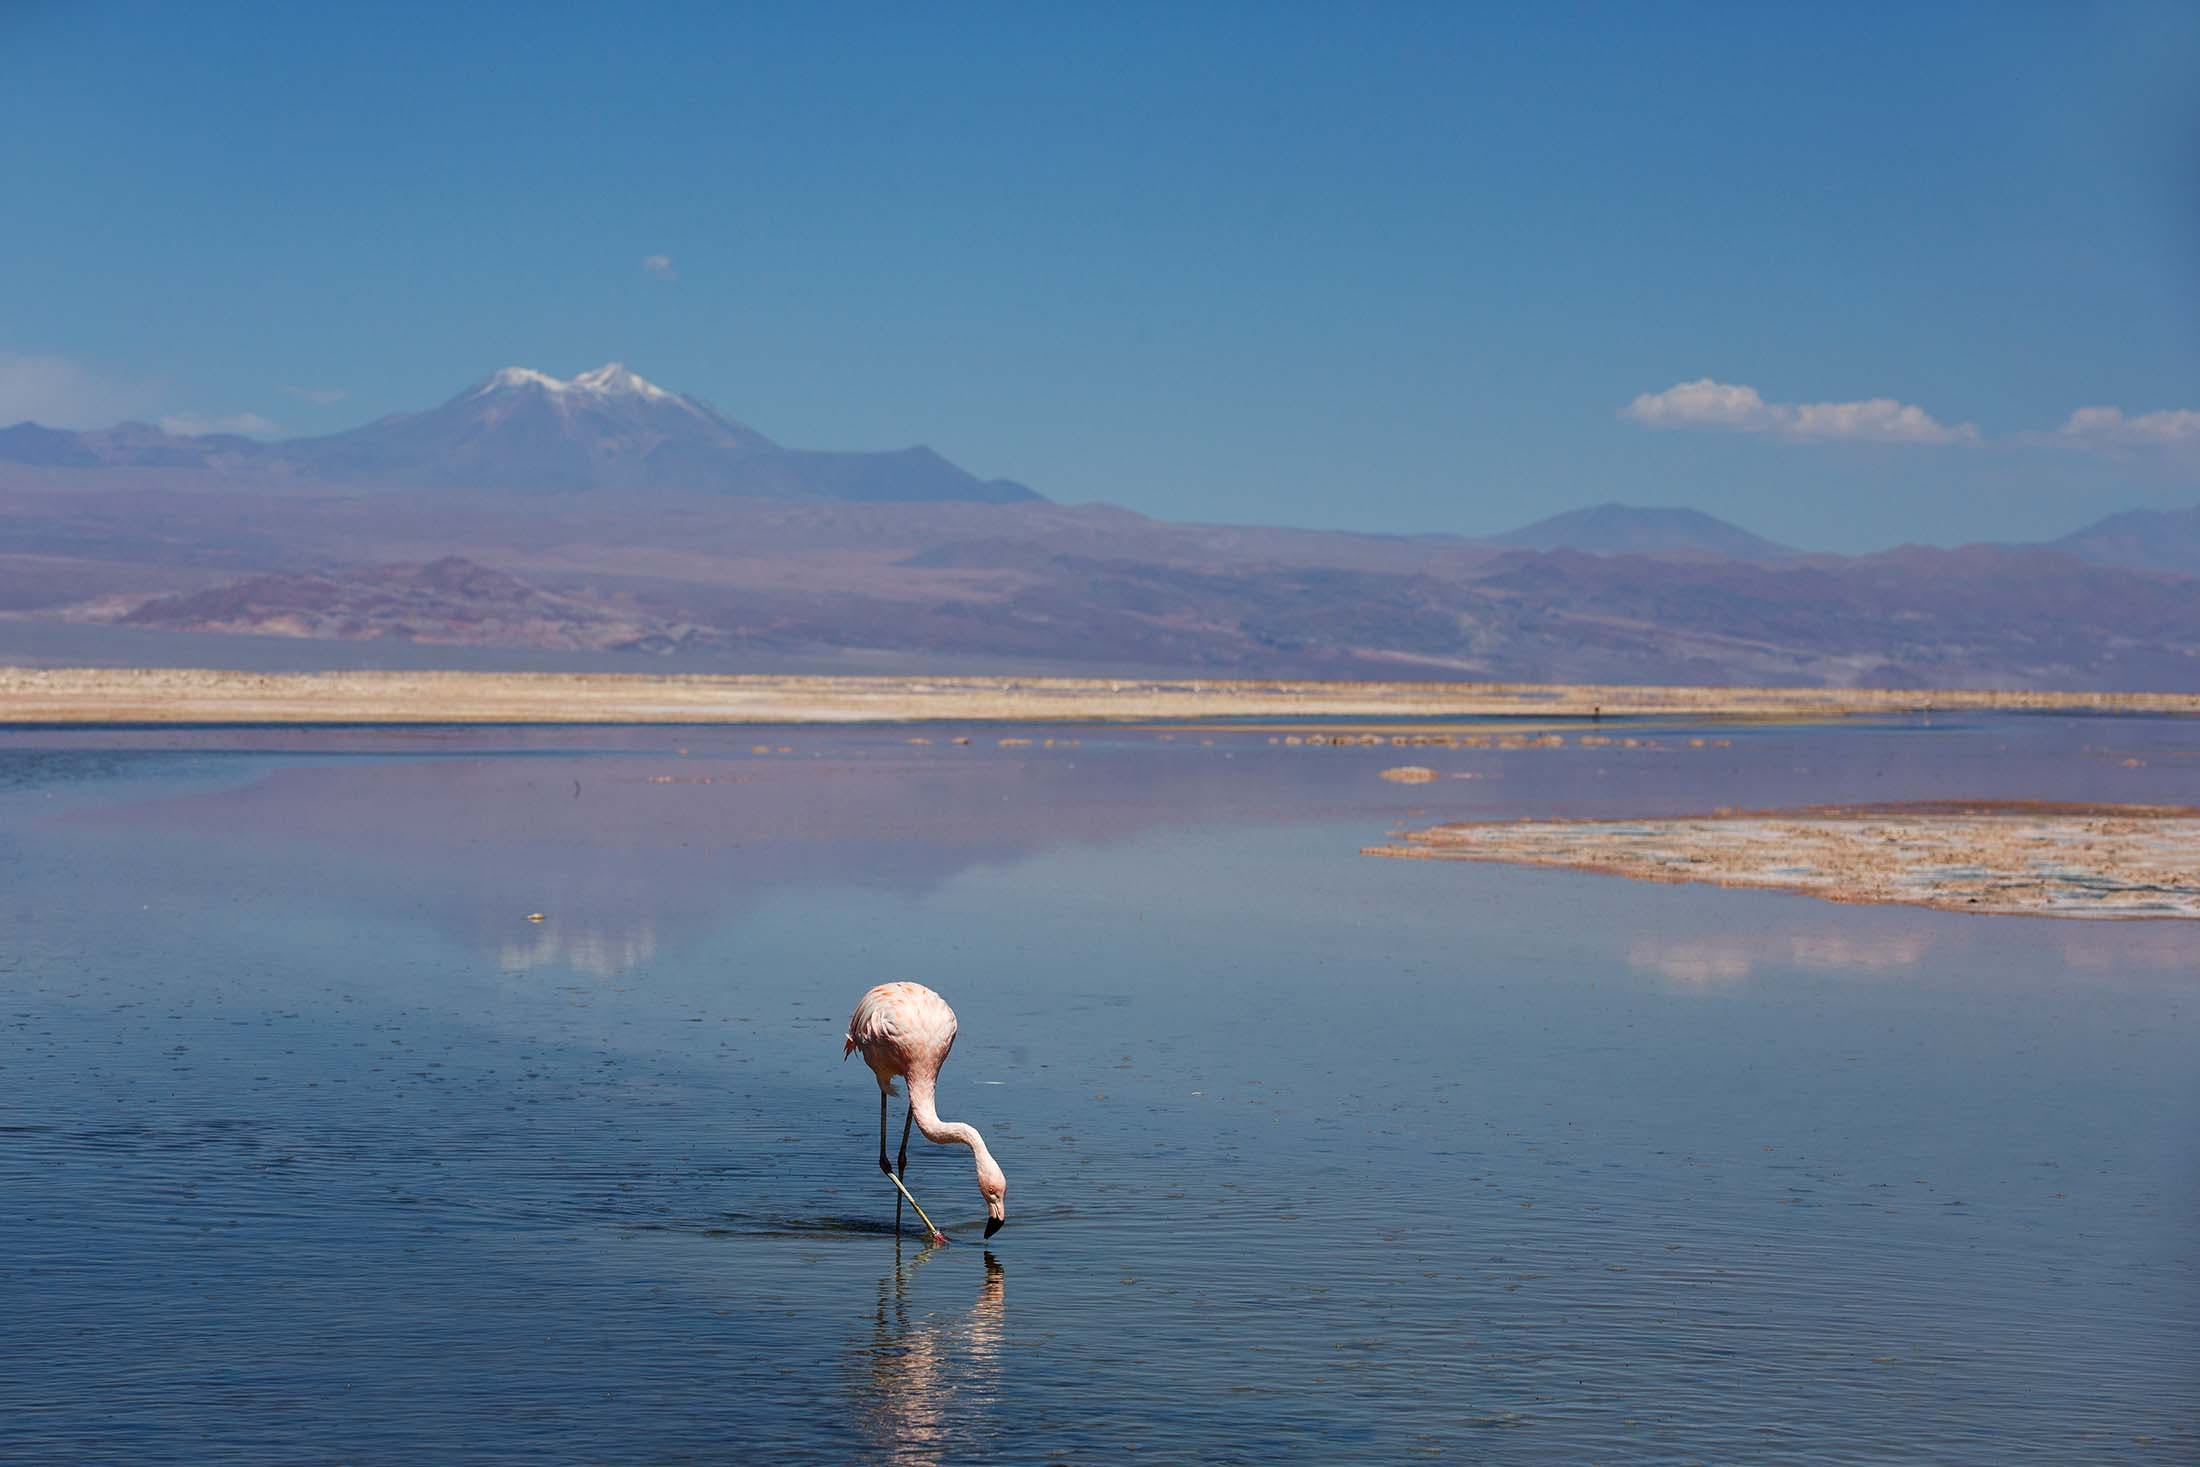 Pink flamingo in Chile